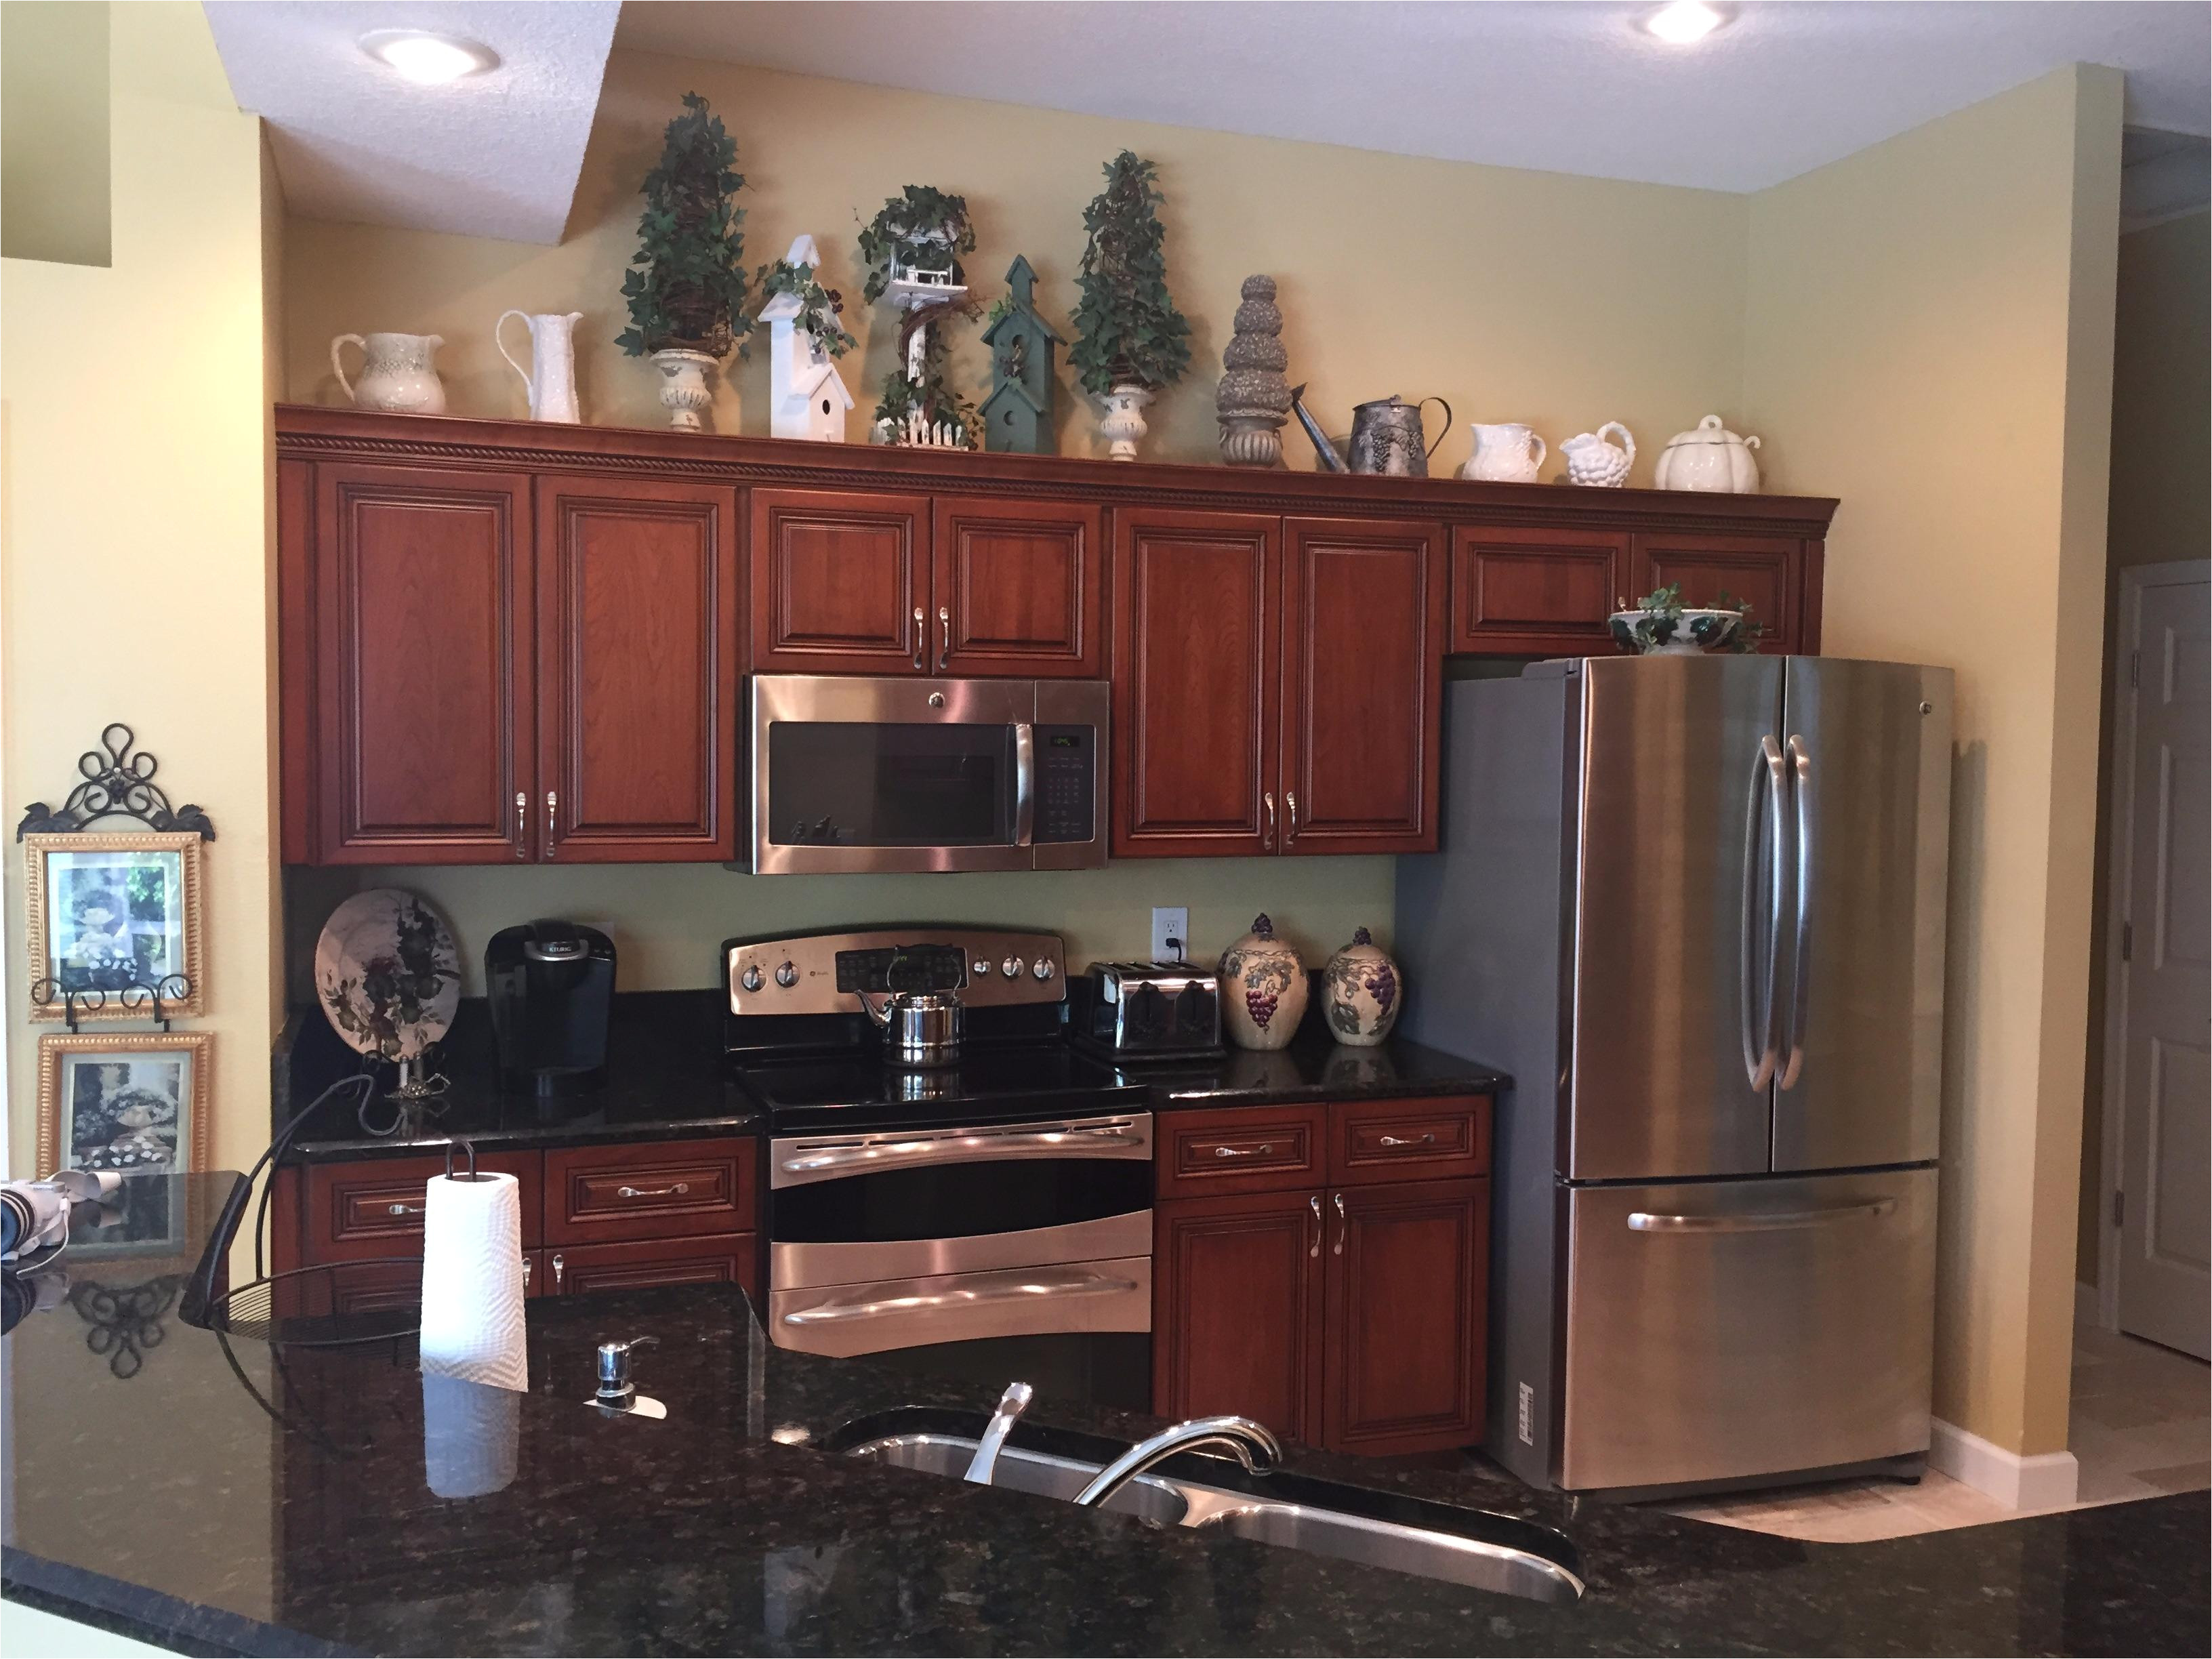 assemble yourself kitchen cabinets cabinet giant reviews conestoga cabinets